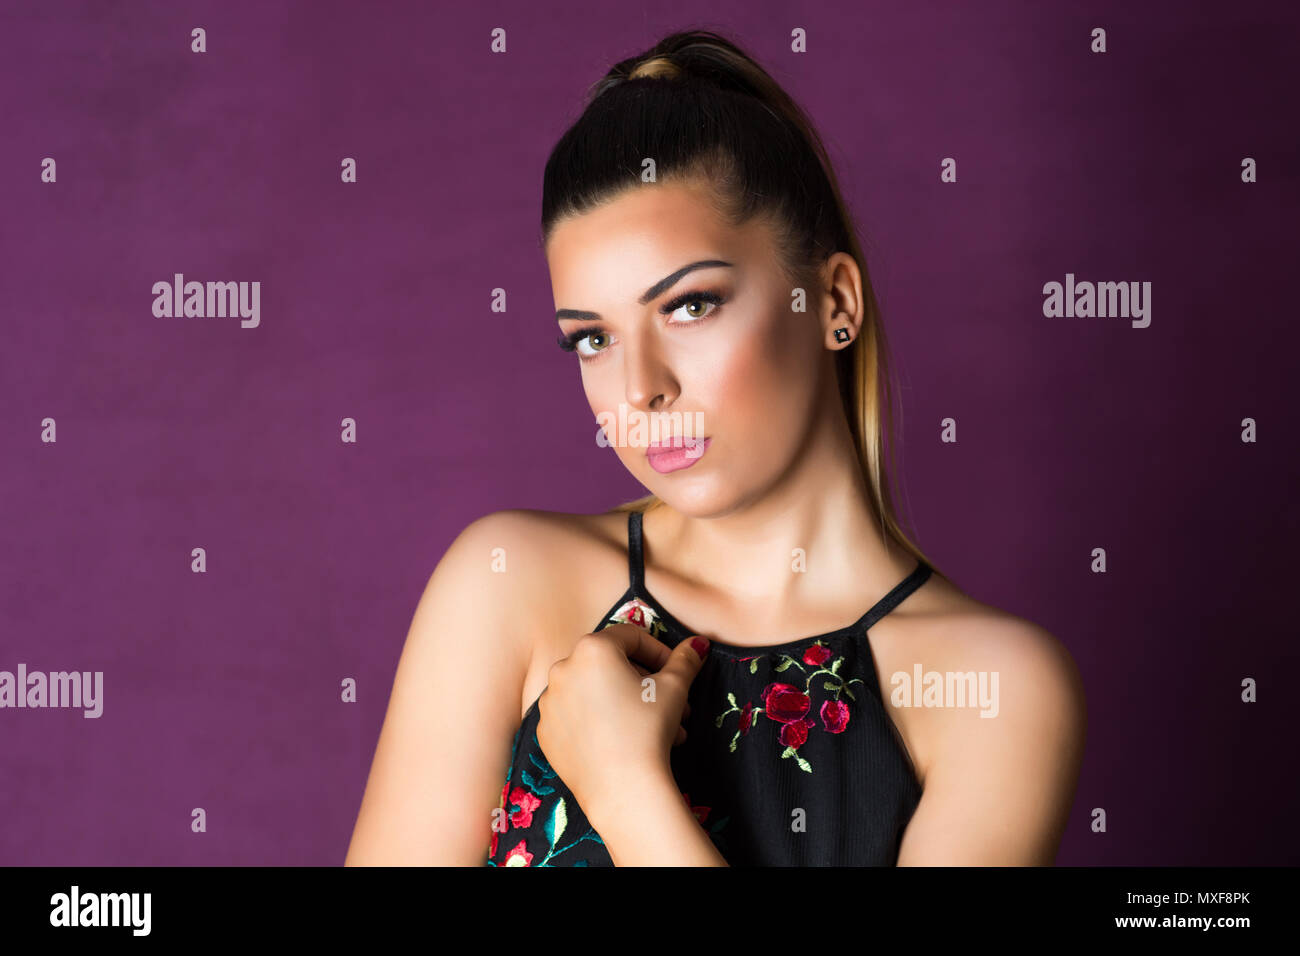 glamour-fashion-girl-portrait-with-profe